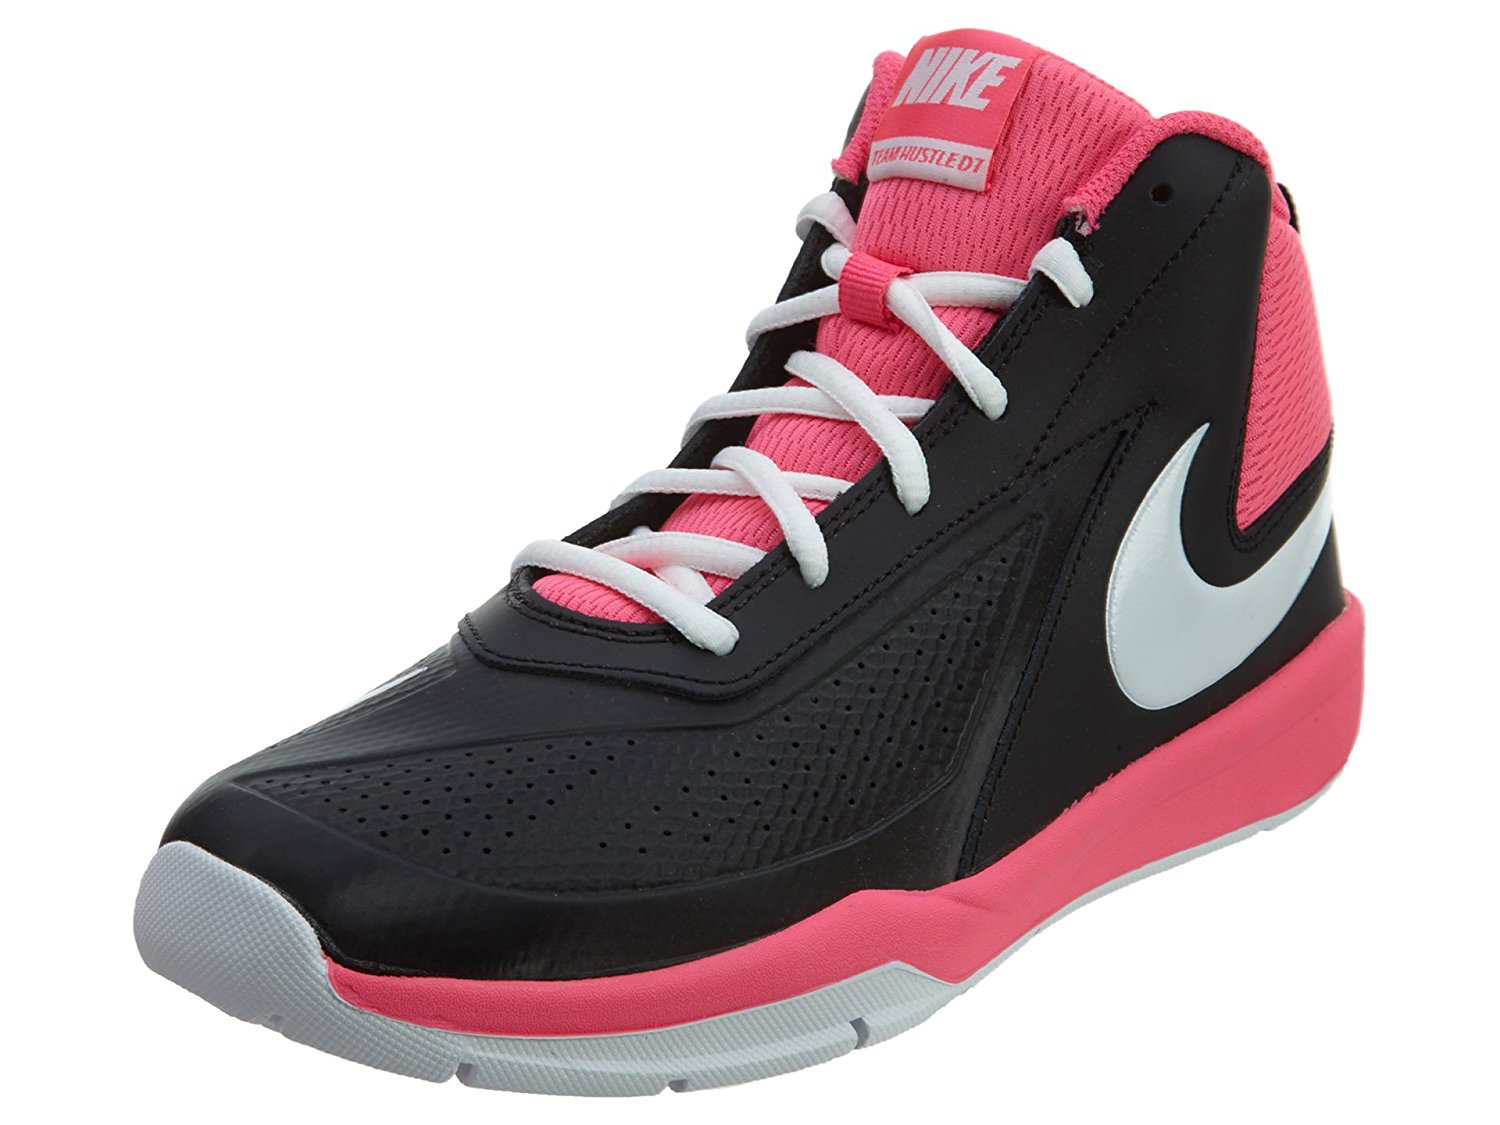 Kids Team Hustle D 7 (GS) Basketball Shoe made by Nike. These brand name basketball  shoes are made with traction and support in mind. 204c887a1